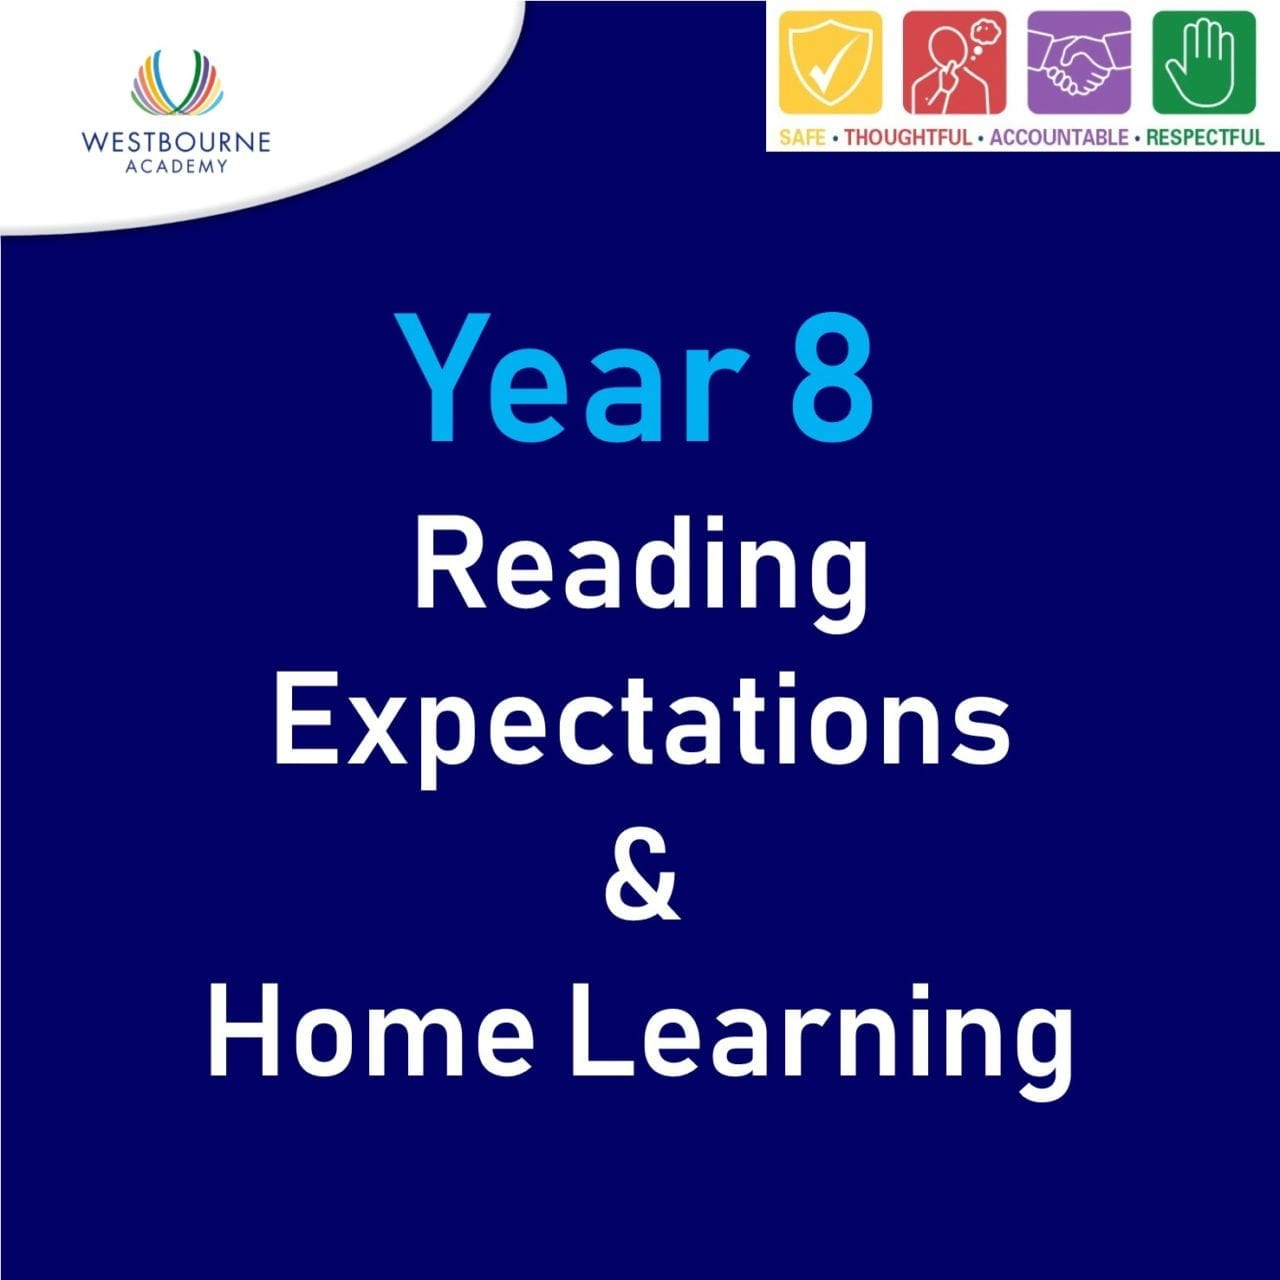 Year 8 Reading Expectations & Home Learning